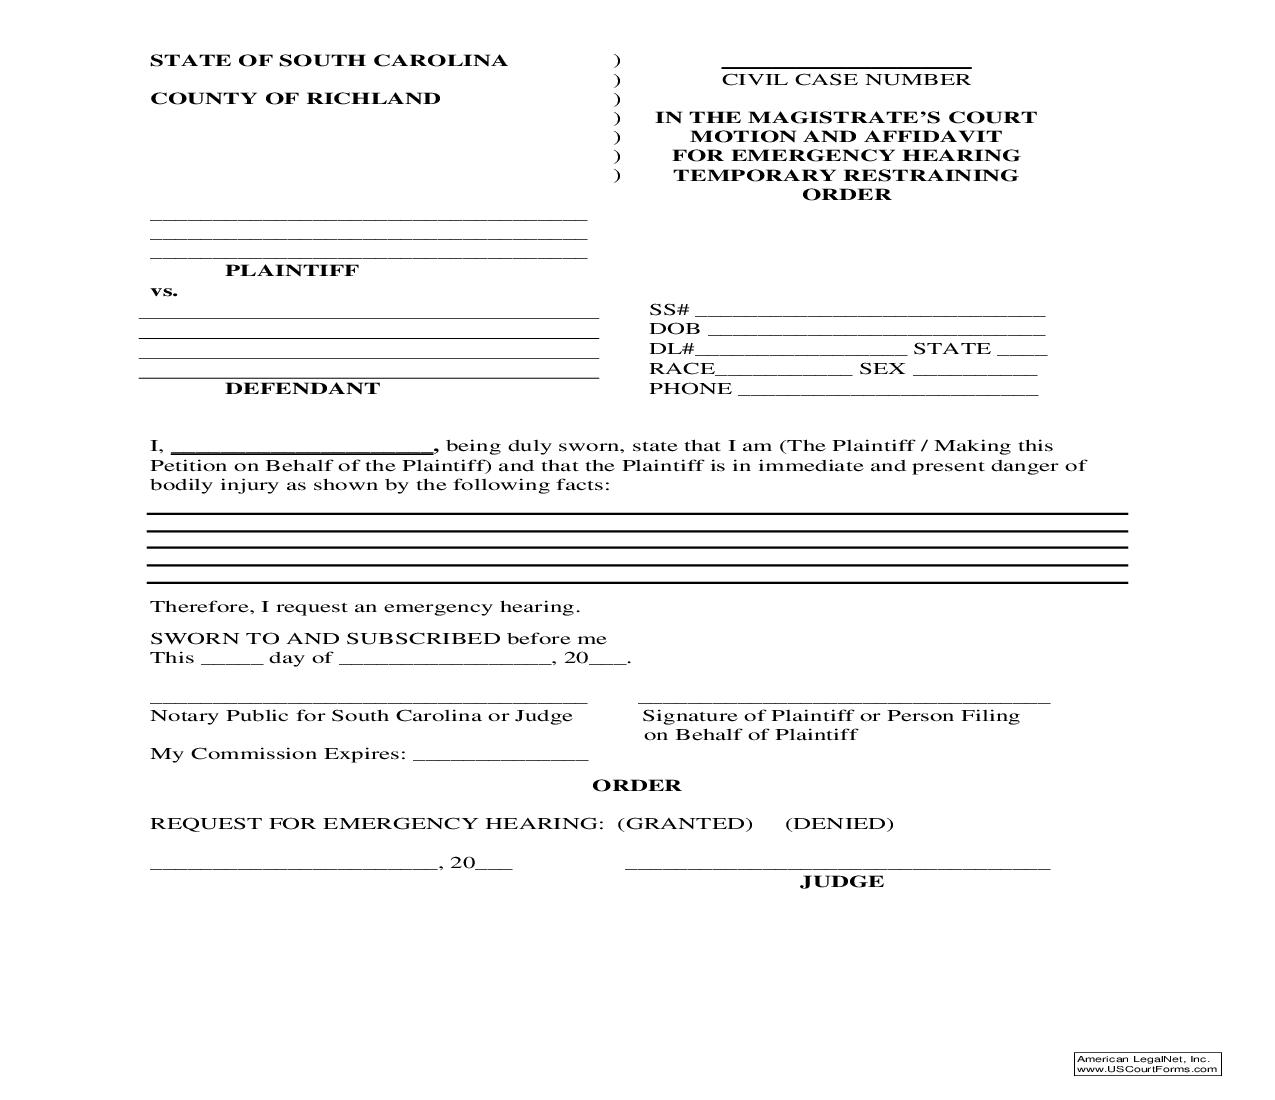 Motion And Affidavit For Emergency Hearing Temporary Restraining Order | Pdf Fpdf Doc Docx | South Carolina